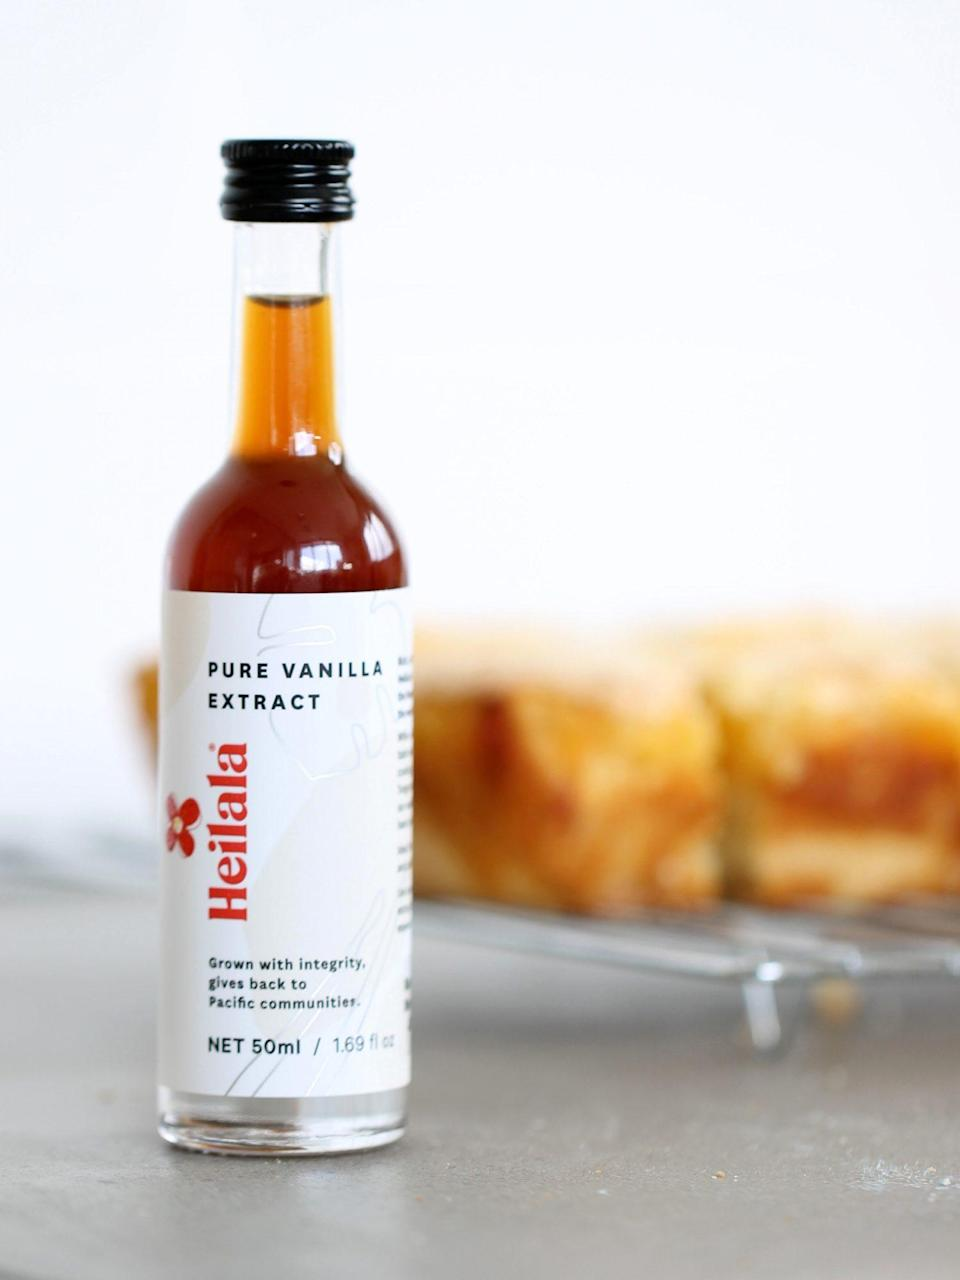 """<p>Started as an aid project after a cyclone hit Tonga in 2002, Heilala vanilla is now one of the <a href=""""https://www.marthastewart.com/1528019/heilala-vanilla-42-burners"""" rel=""""nofollow noopener"""" target=""""_blank"""" data-ylk=""""slk:favorite ingredients of professional bakers and chefs"""" class=""""link rapid-noclick-resp"""">favorite ingredients of professional bakers and chefs</a> in the United States. Through its vanilla, the company provides employment opportunities particularly for women. The bakers on your list will reach for the vanilla extract time and time again.</p> <p><strong><em>Shop Now: </em></strong><em>Heilala Pure Vanilla Extract, Sugar-Free, $14.57, <a href=""""https://www.amazon.com/Pure-Vanilla-Extract-Baking-Organically/dp/B01HJHX9ZO/ref=as_li_ss_tl?ie=UTF8&linkCode=ll1&tag=mslggforsustainablecooksbshirvelloct20-20&linkId=72833dd558ca05d82e4bc9a2122254cf&language=en_US"""" rel=""""nofollow noopener"""" target=""""_blank"""" data-ylk=""""slk:amazon.com"""" class=""""link rapid-noclick-resp"""">amazon.com</a>.</em></p>"""